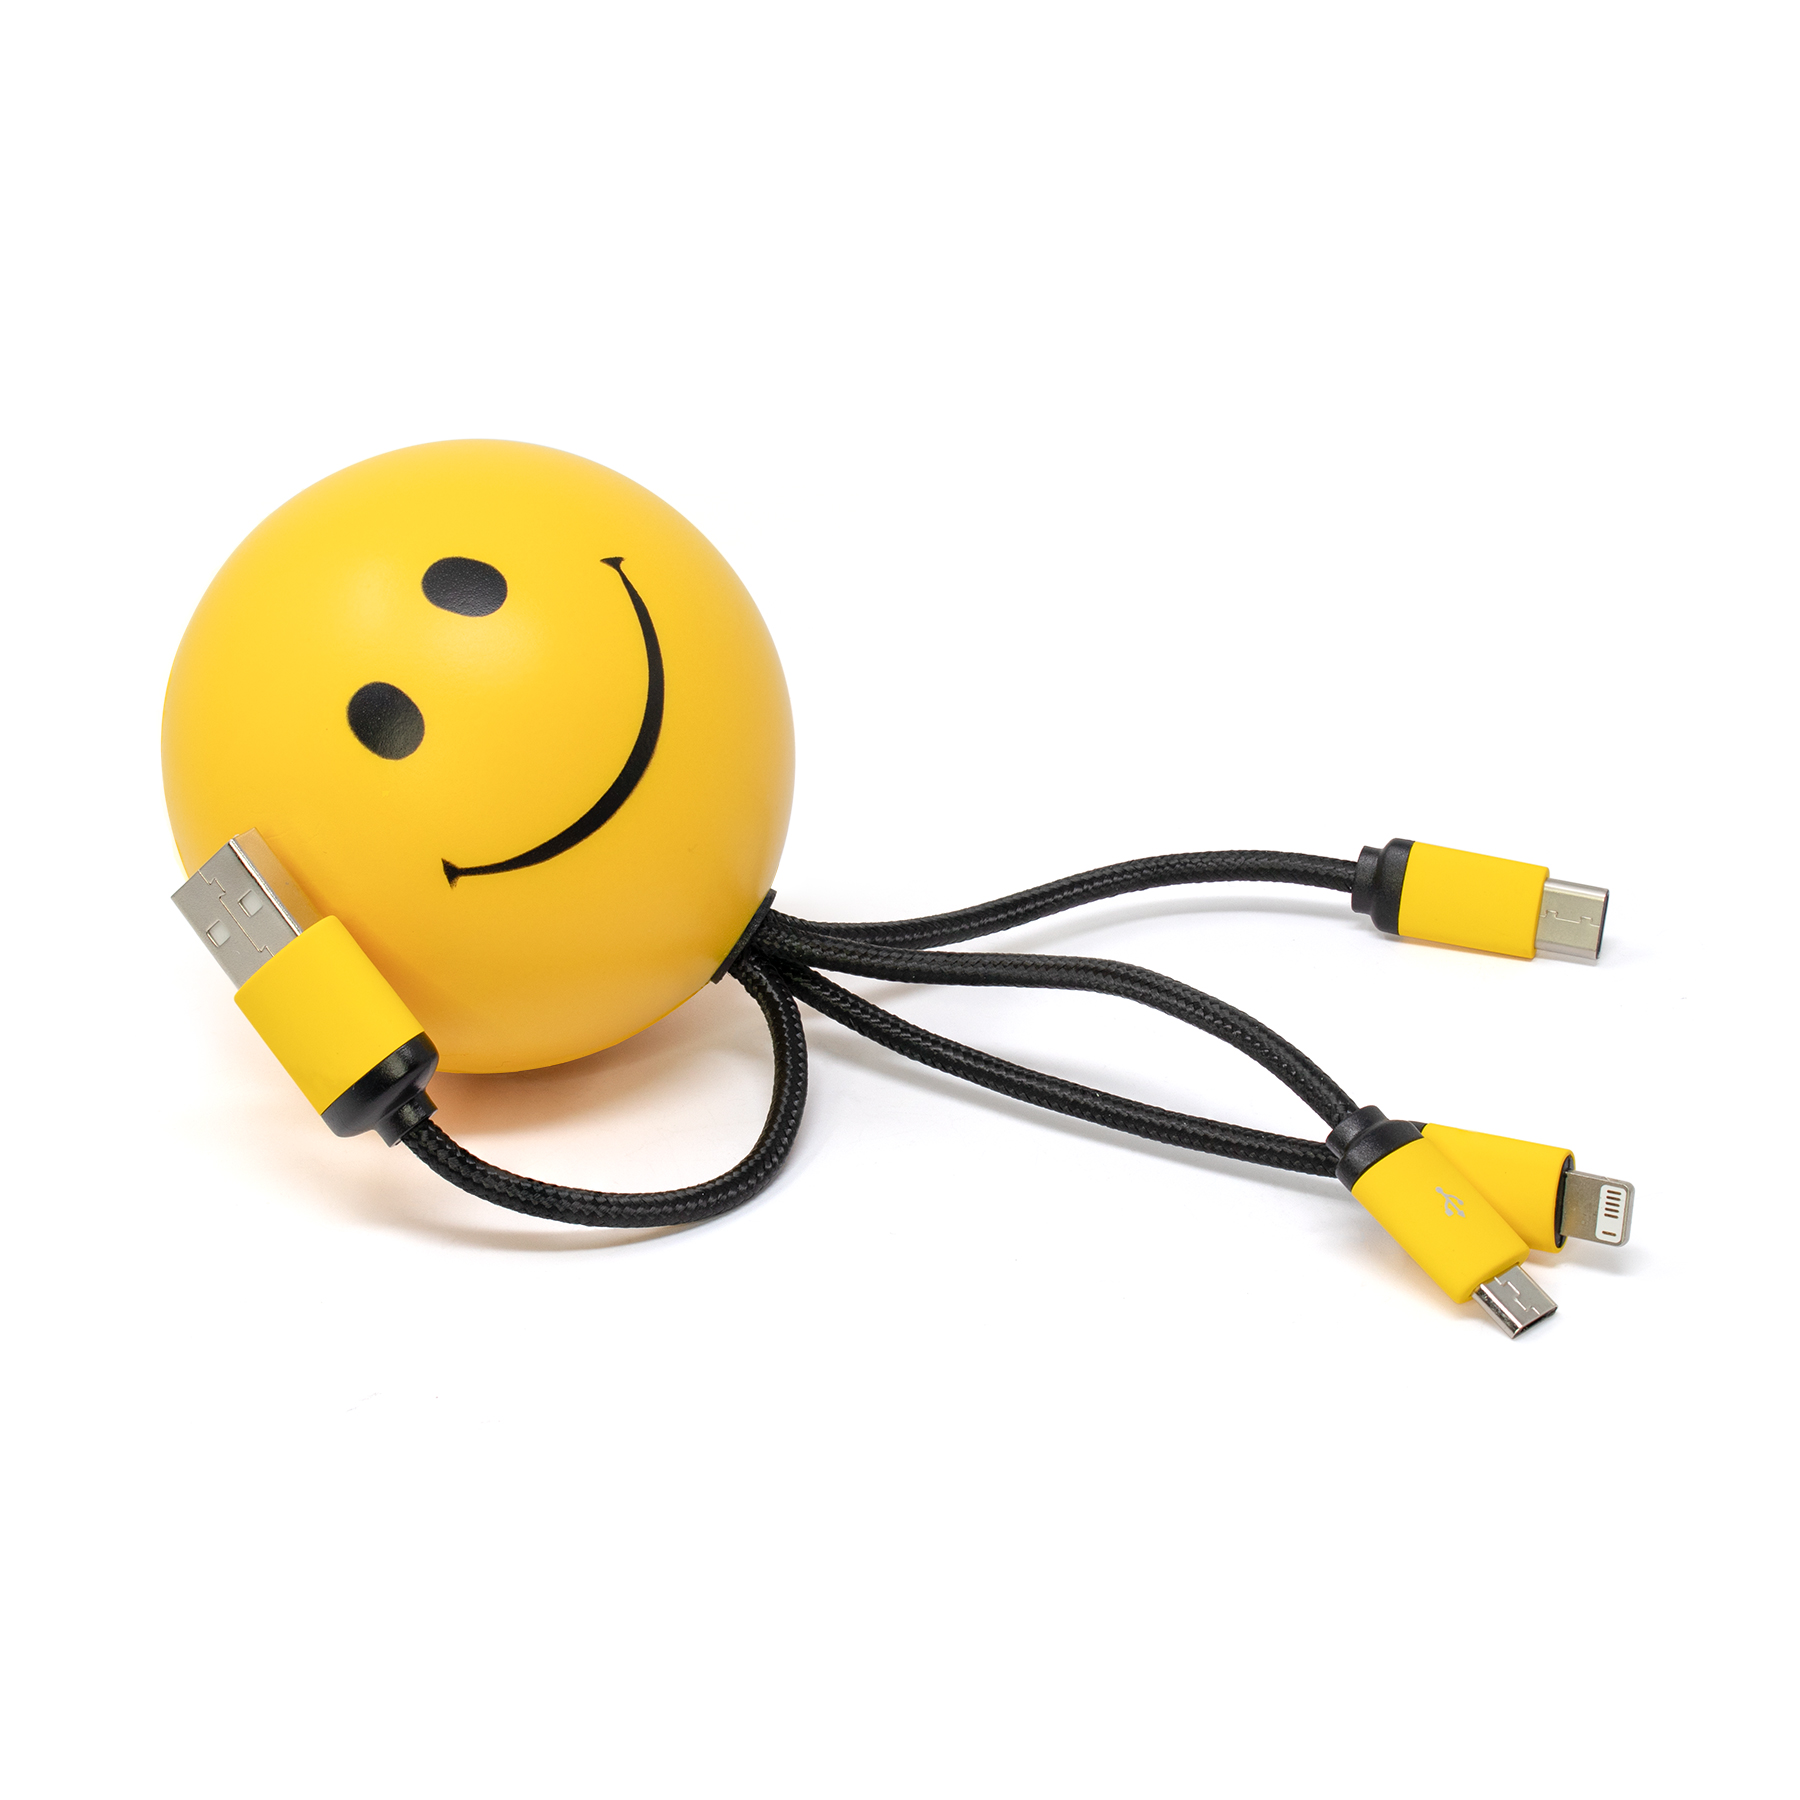 SqueezieCords - Smiley Face Stress Ball with Charging Cables - Yellow